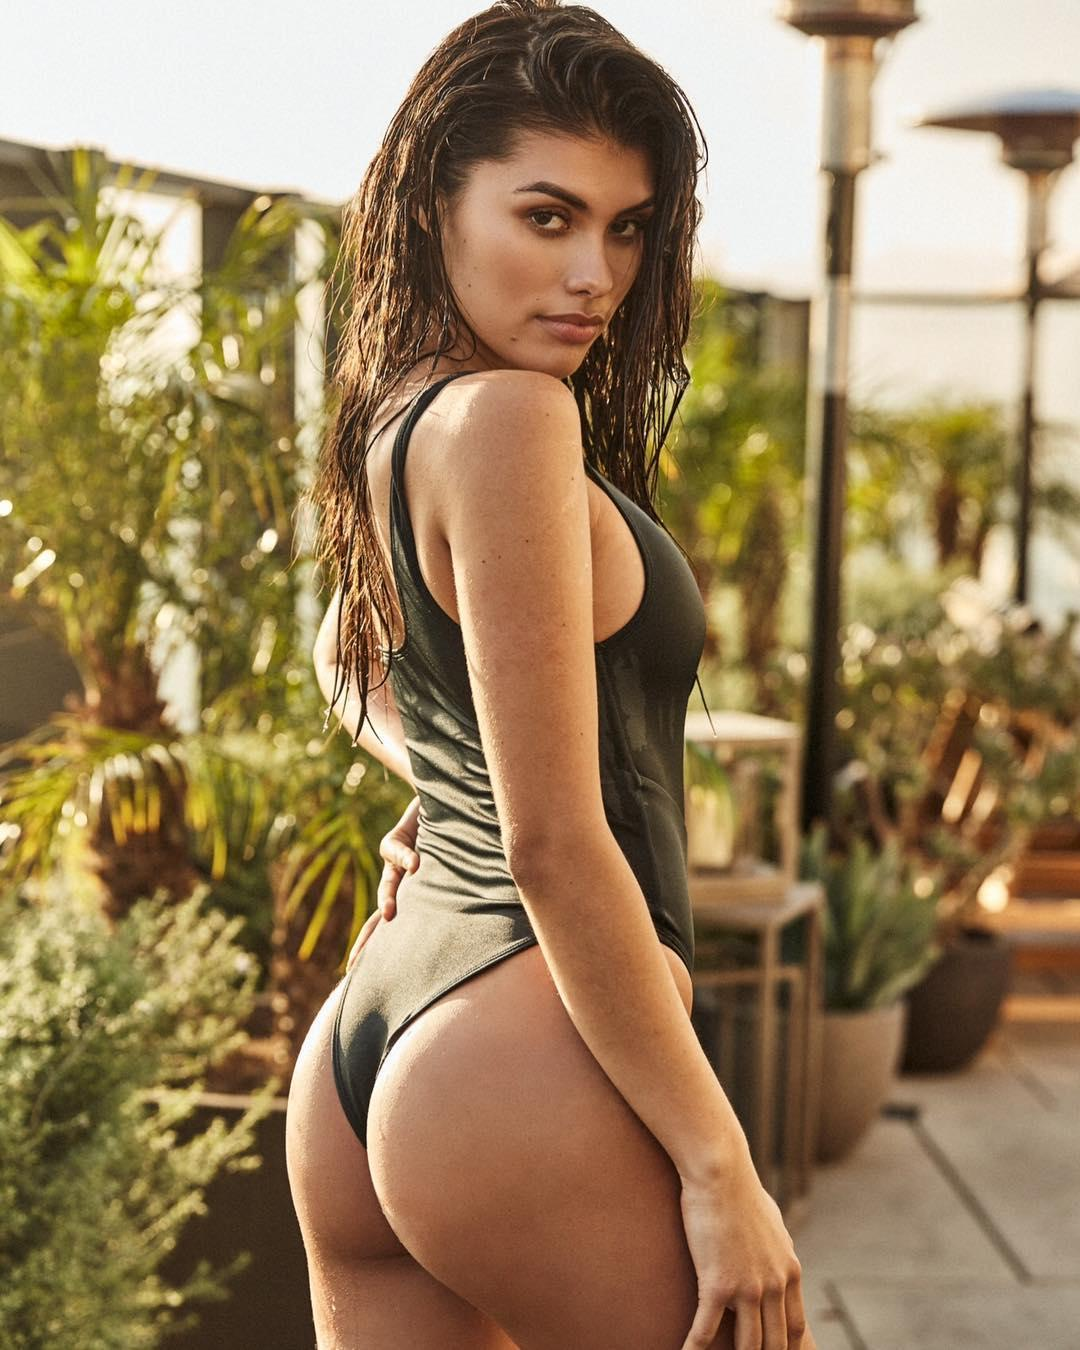 Sophia Gasca Sexy Wheat Skin Picture and Photo